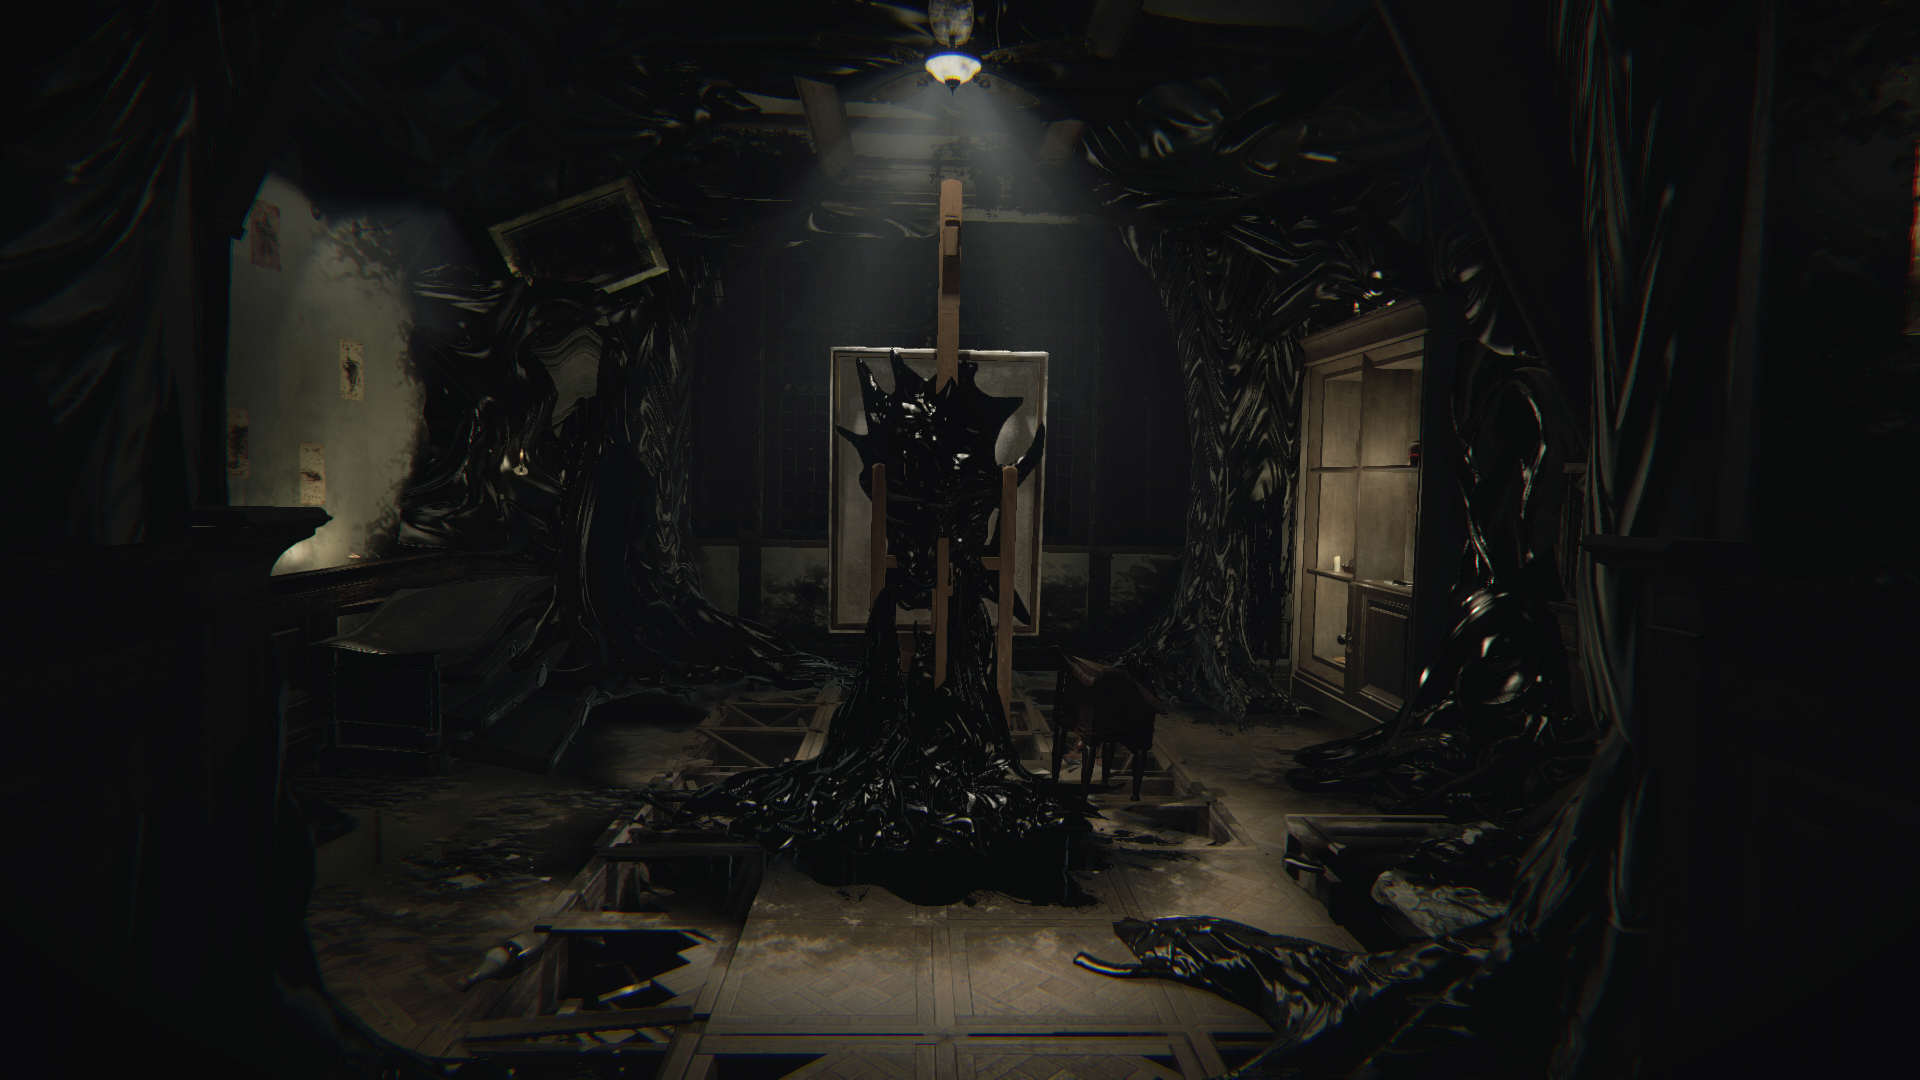 Layers Of Fear Is Isolating, Tense And Unashamedly Terrifying pu28dd2c7955ce926456240b2ff0100bde 1453306967 9600382 screenshot original